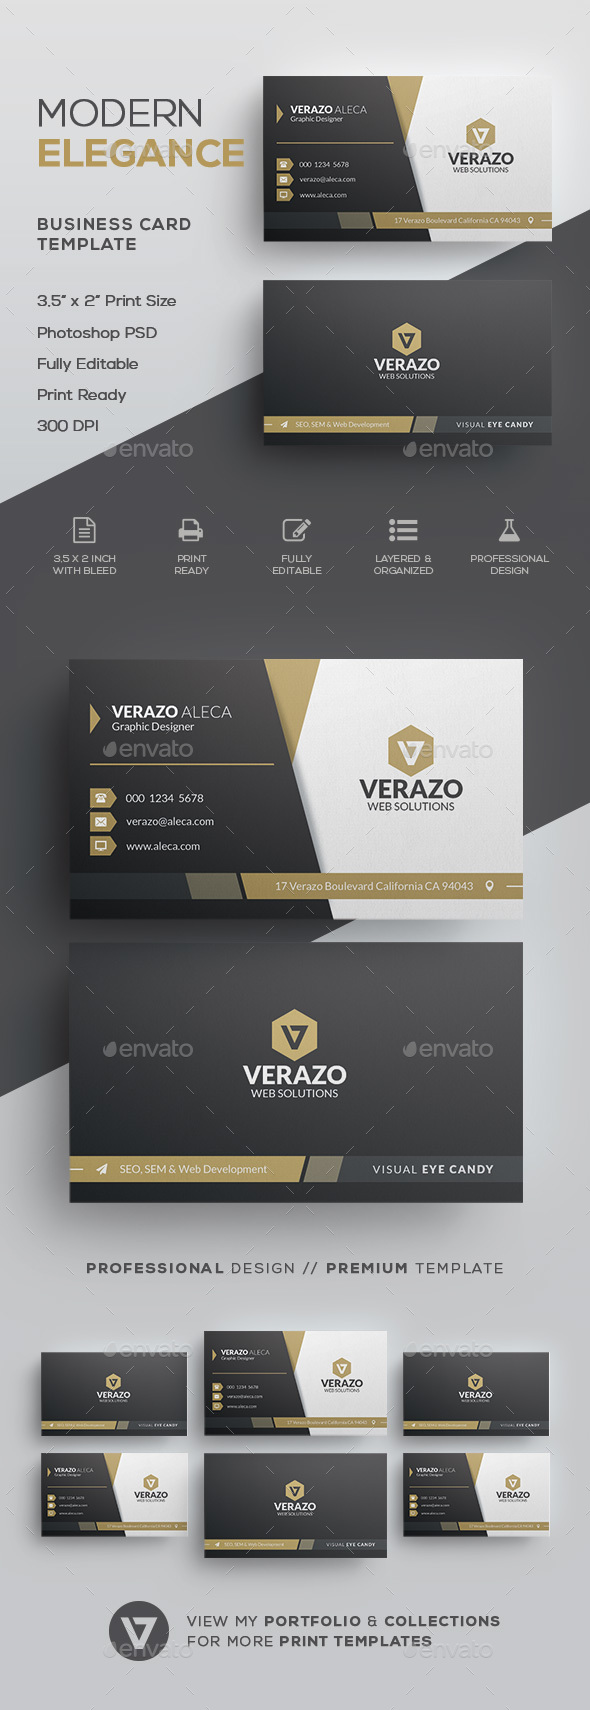 Elegant Business Card Template by verazo | GraphicRiver